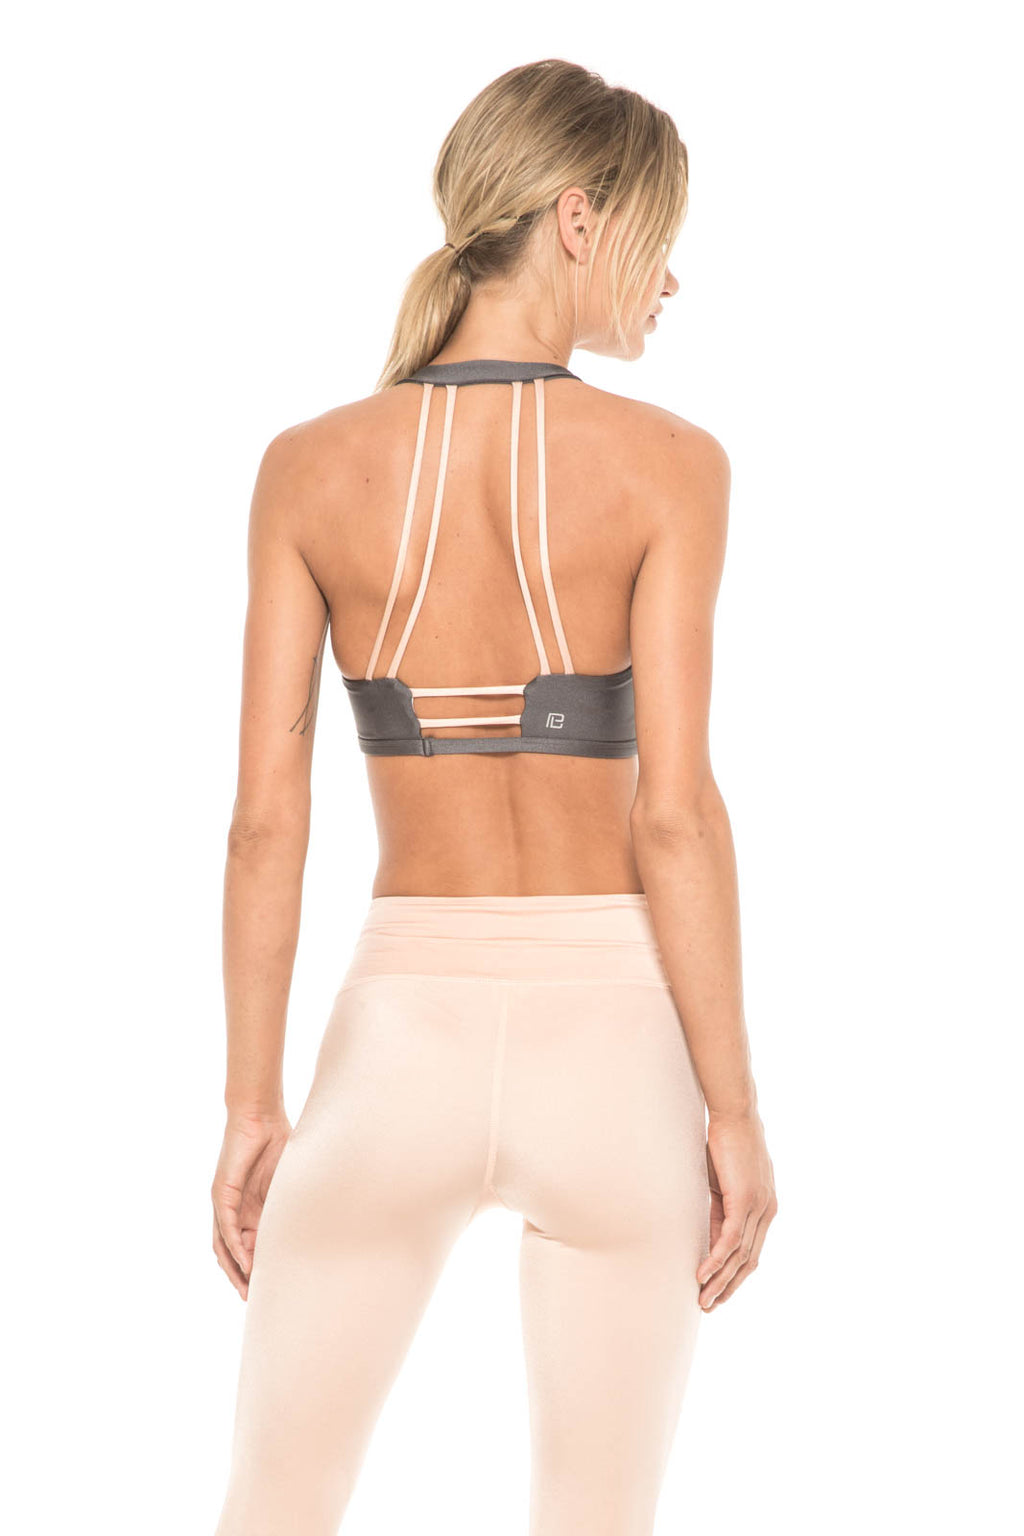 Body Language Sportswear:Women - Apparel - Active Wear - Tops:Kloss Top in Graphite:XS